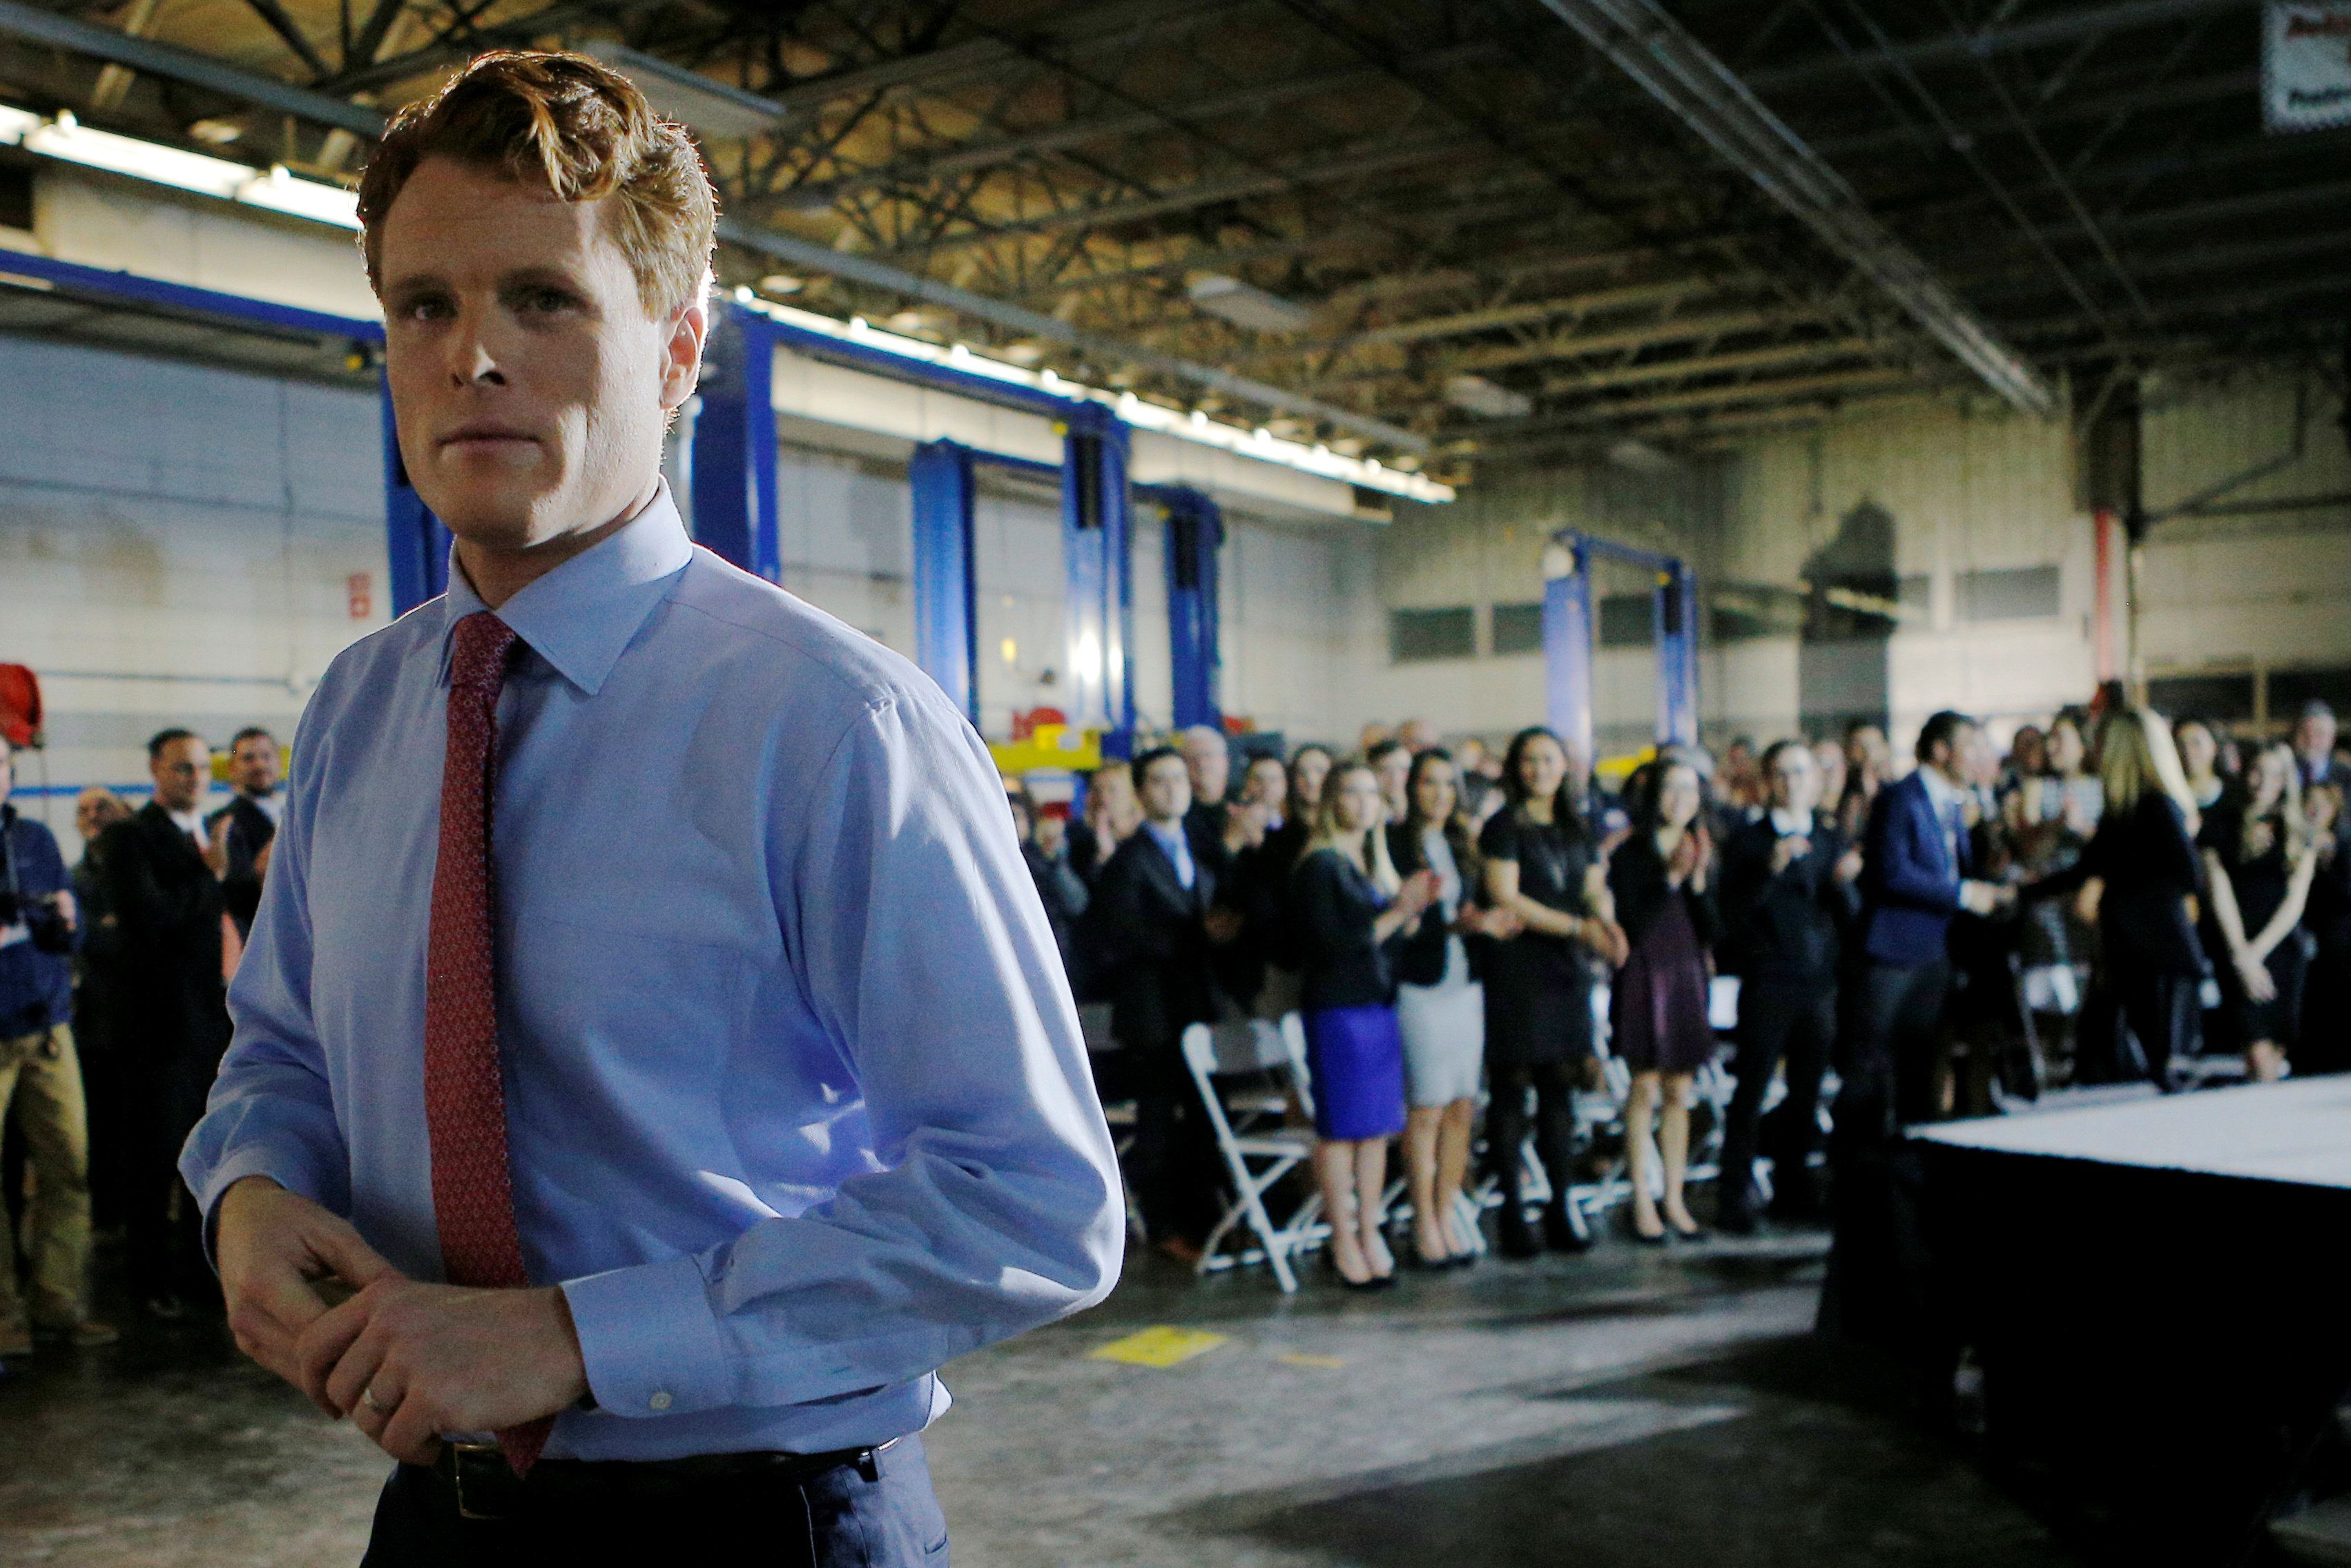 U.S. Rep. Joe Kennedy III (D-MA) leaves the stage after delivering the Democratic rebuttal to U.S. President Donald Trump's State of the Union address in Fall River, Massachusetts, U.S., January 30, 2018.   REUTERS/Brian Snyder